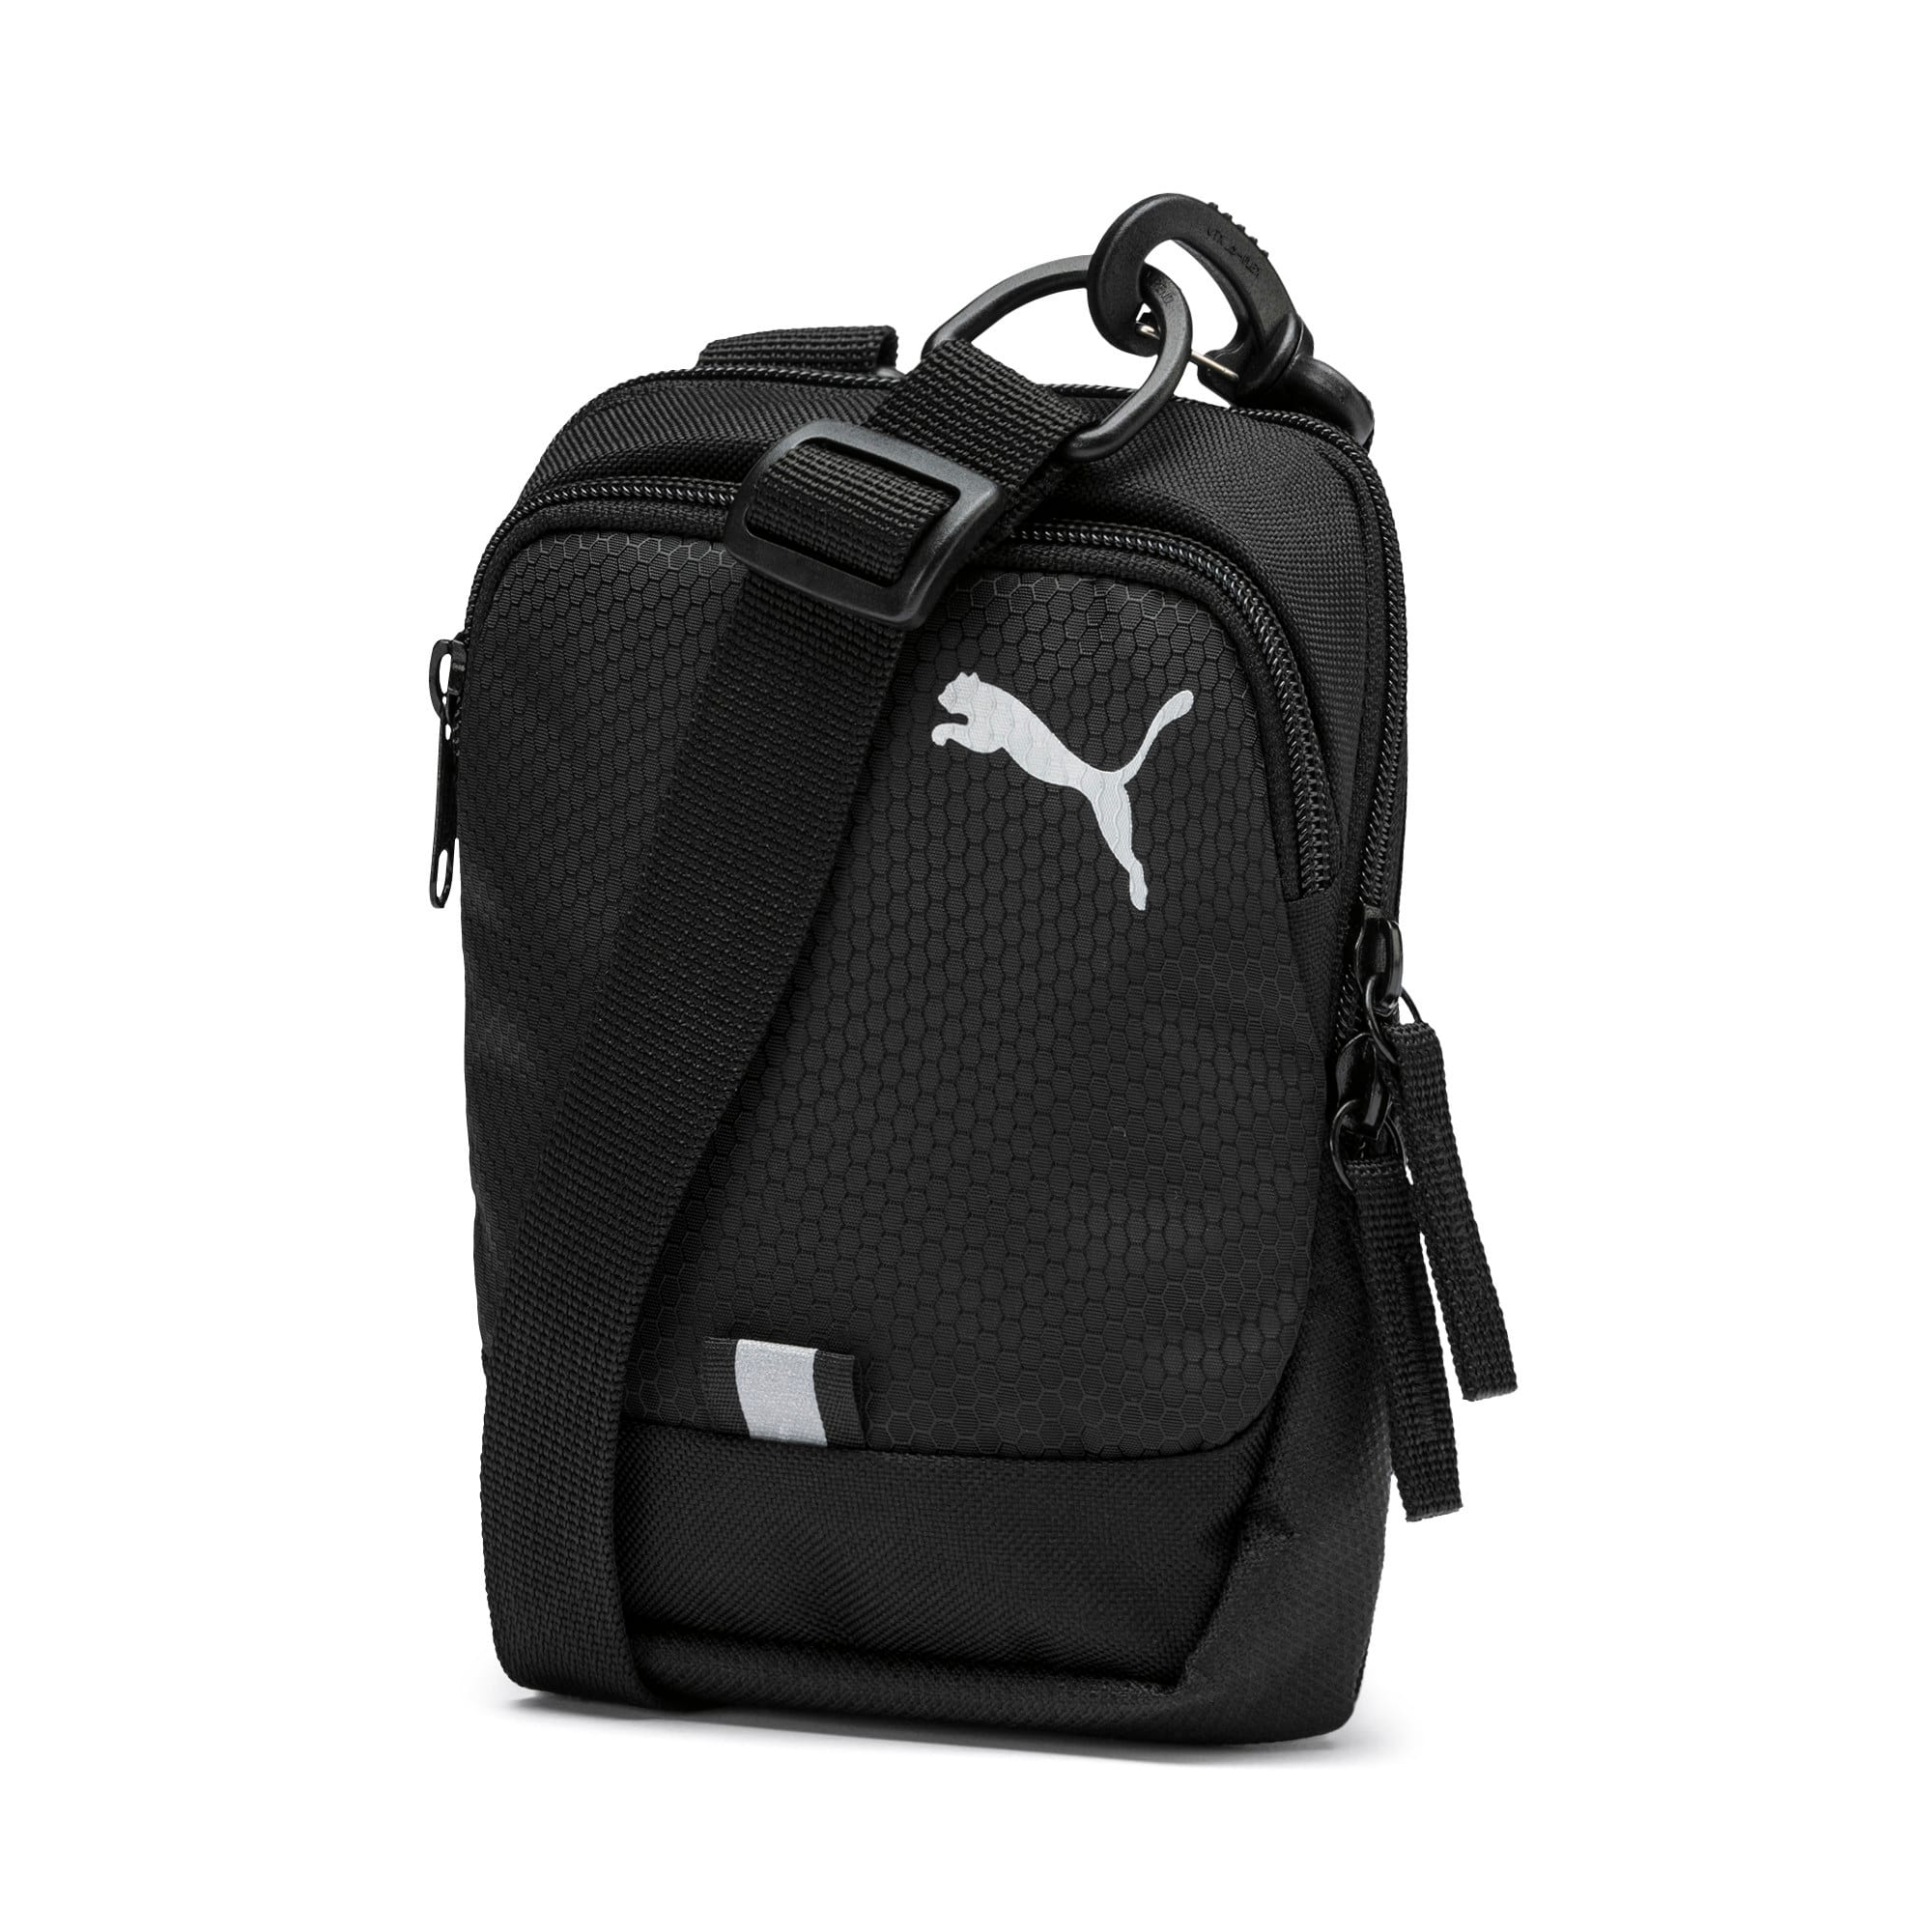 Thumbnail 1 of X Mini Portable Bag, Puma Black, medium-IND